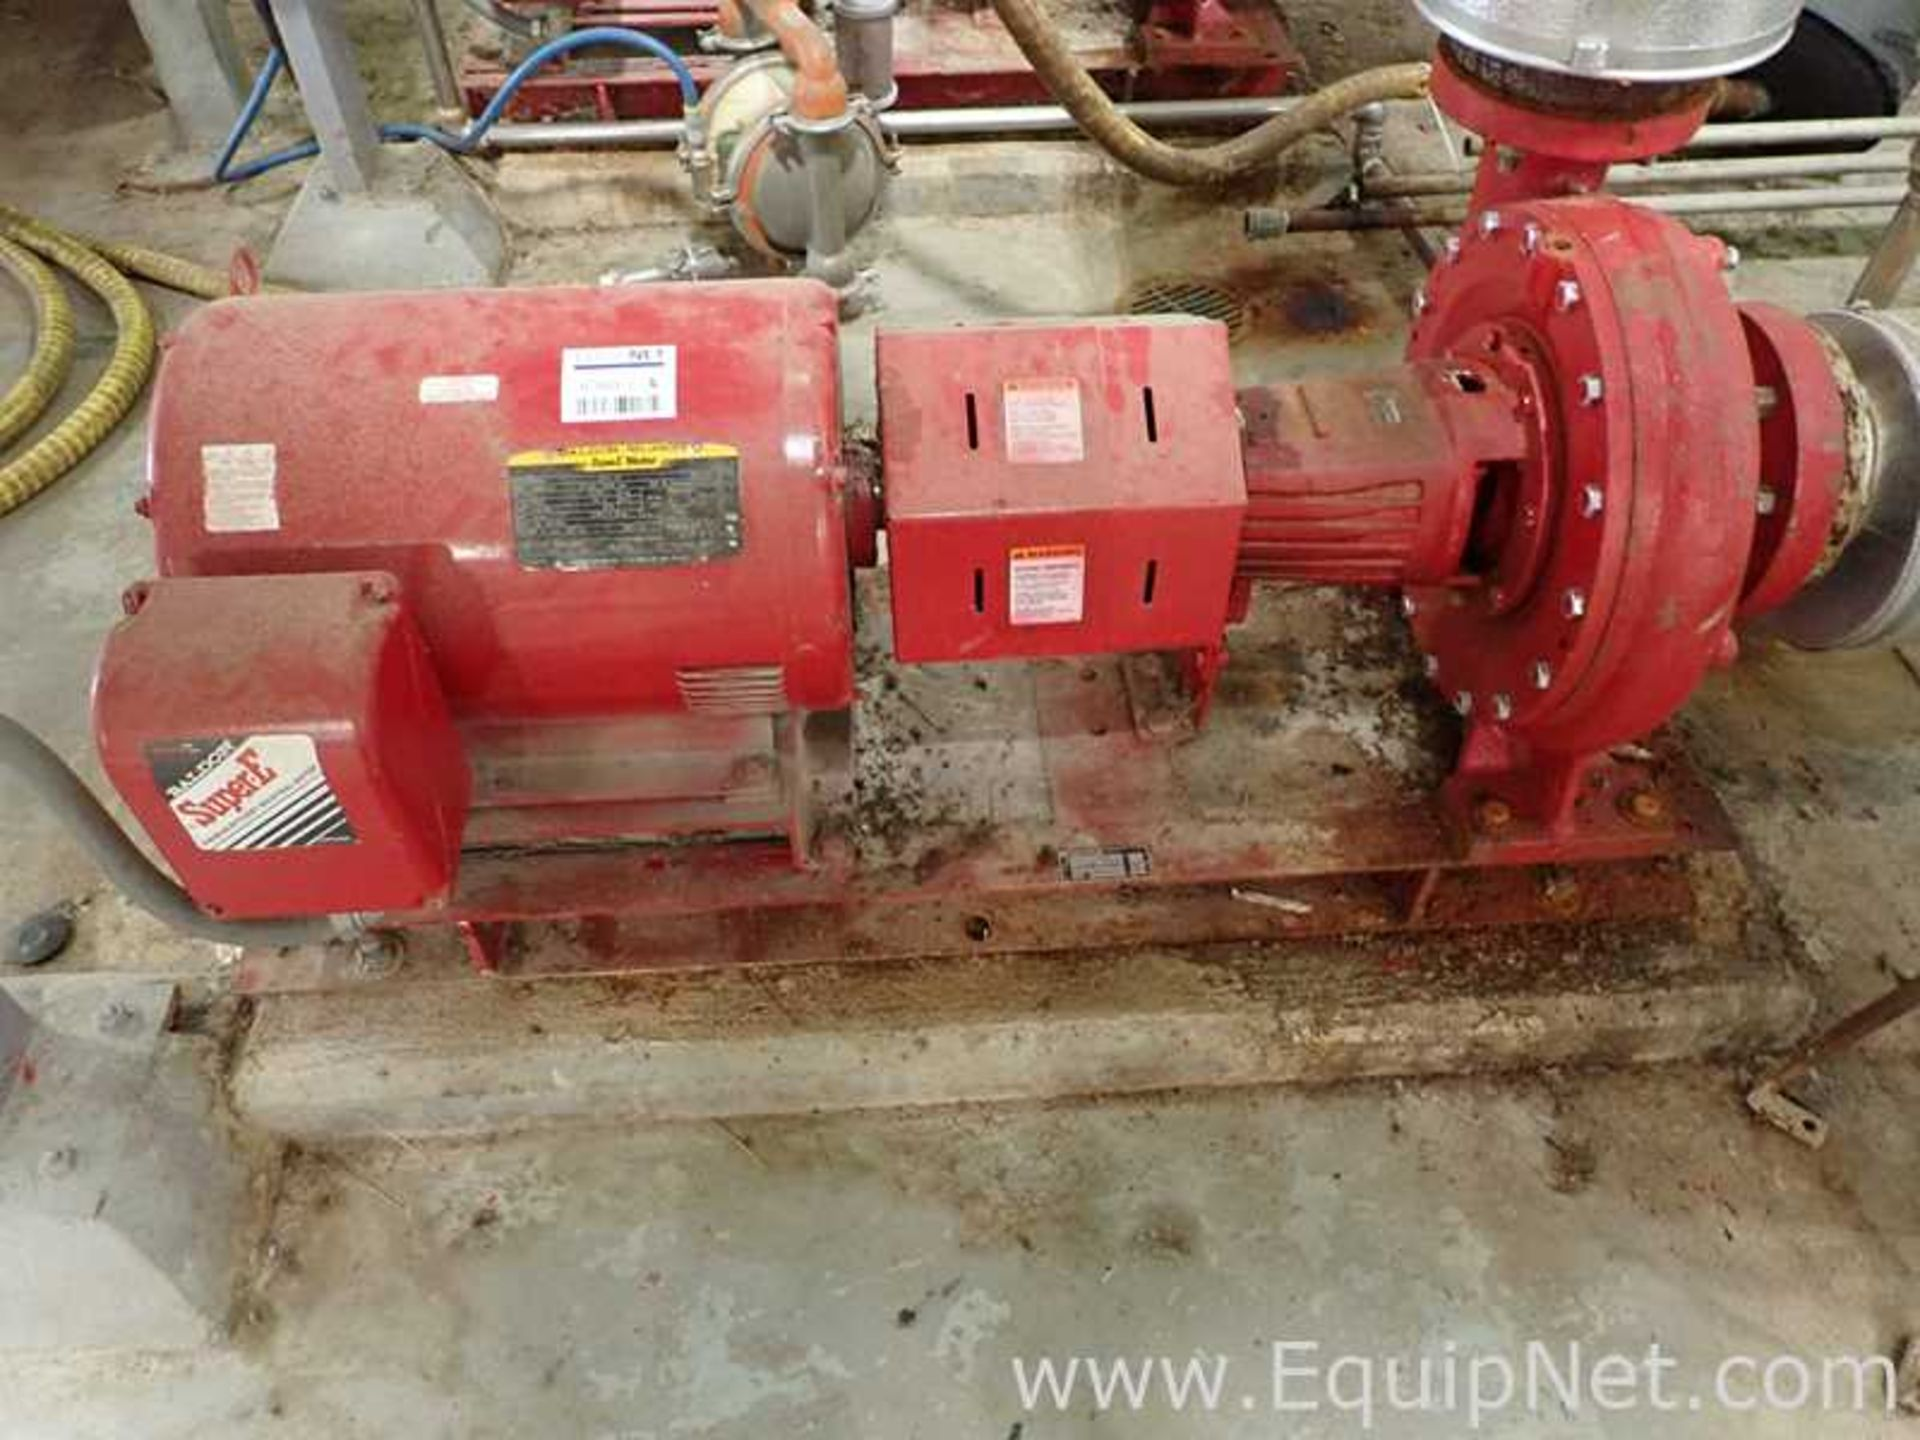 Lot of 2 Bell and Gossett e-1510 25 HP Centrifugal Pumps - Image 2 of 11